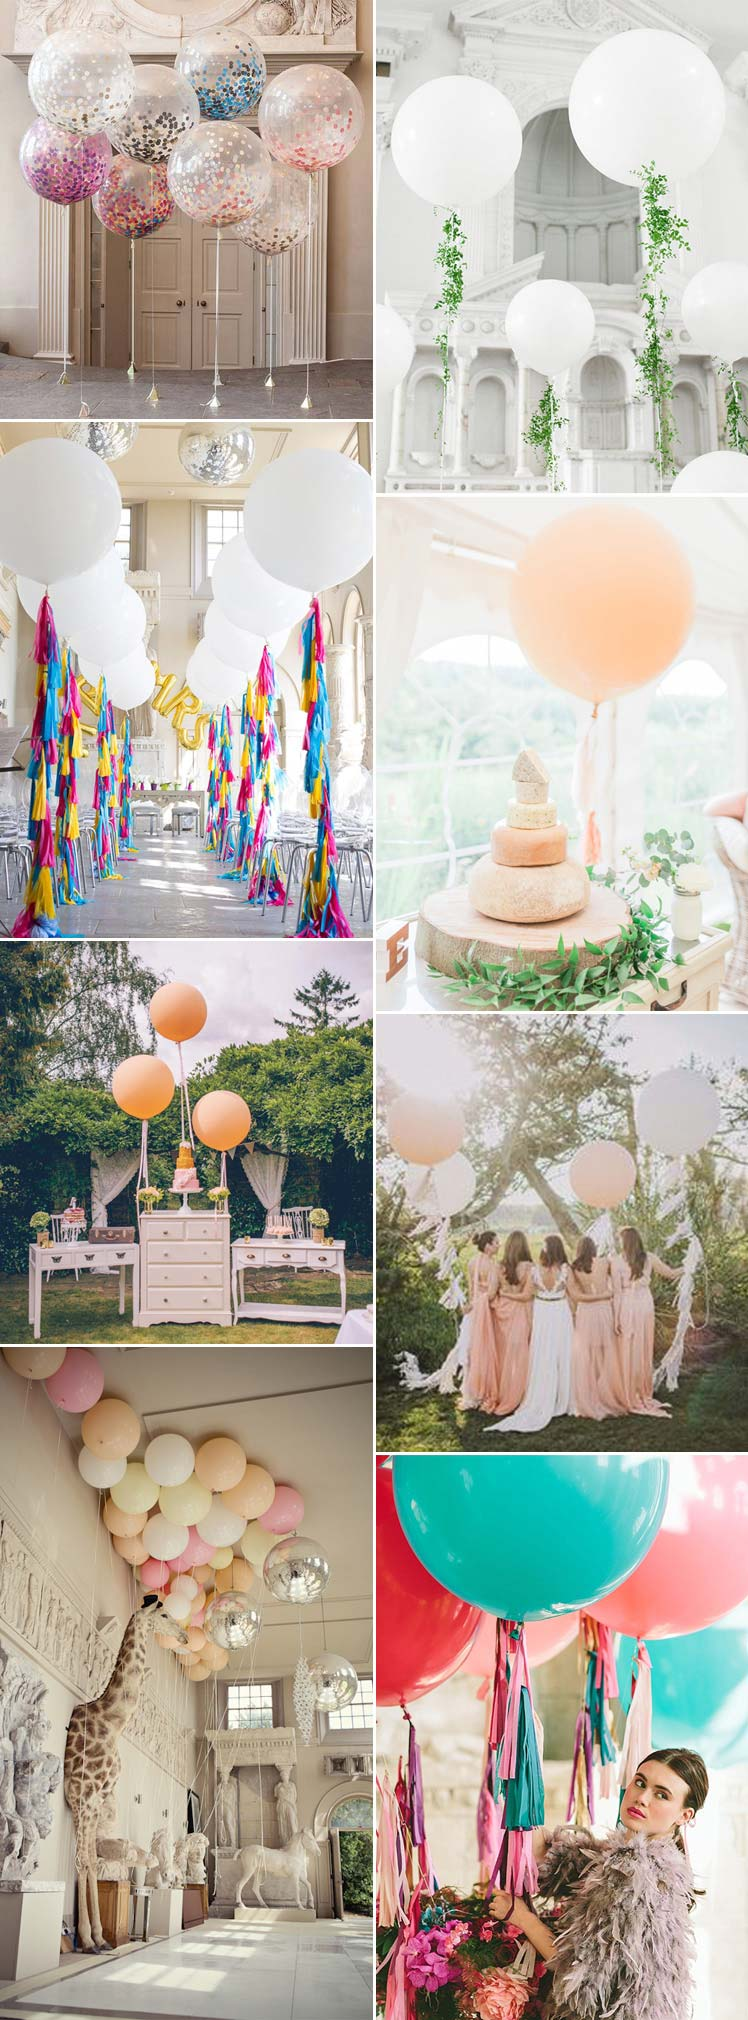 Grown up and stylish wedding balloon ideas